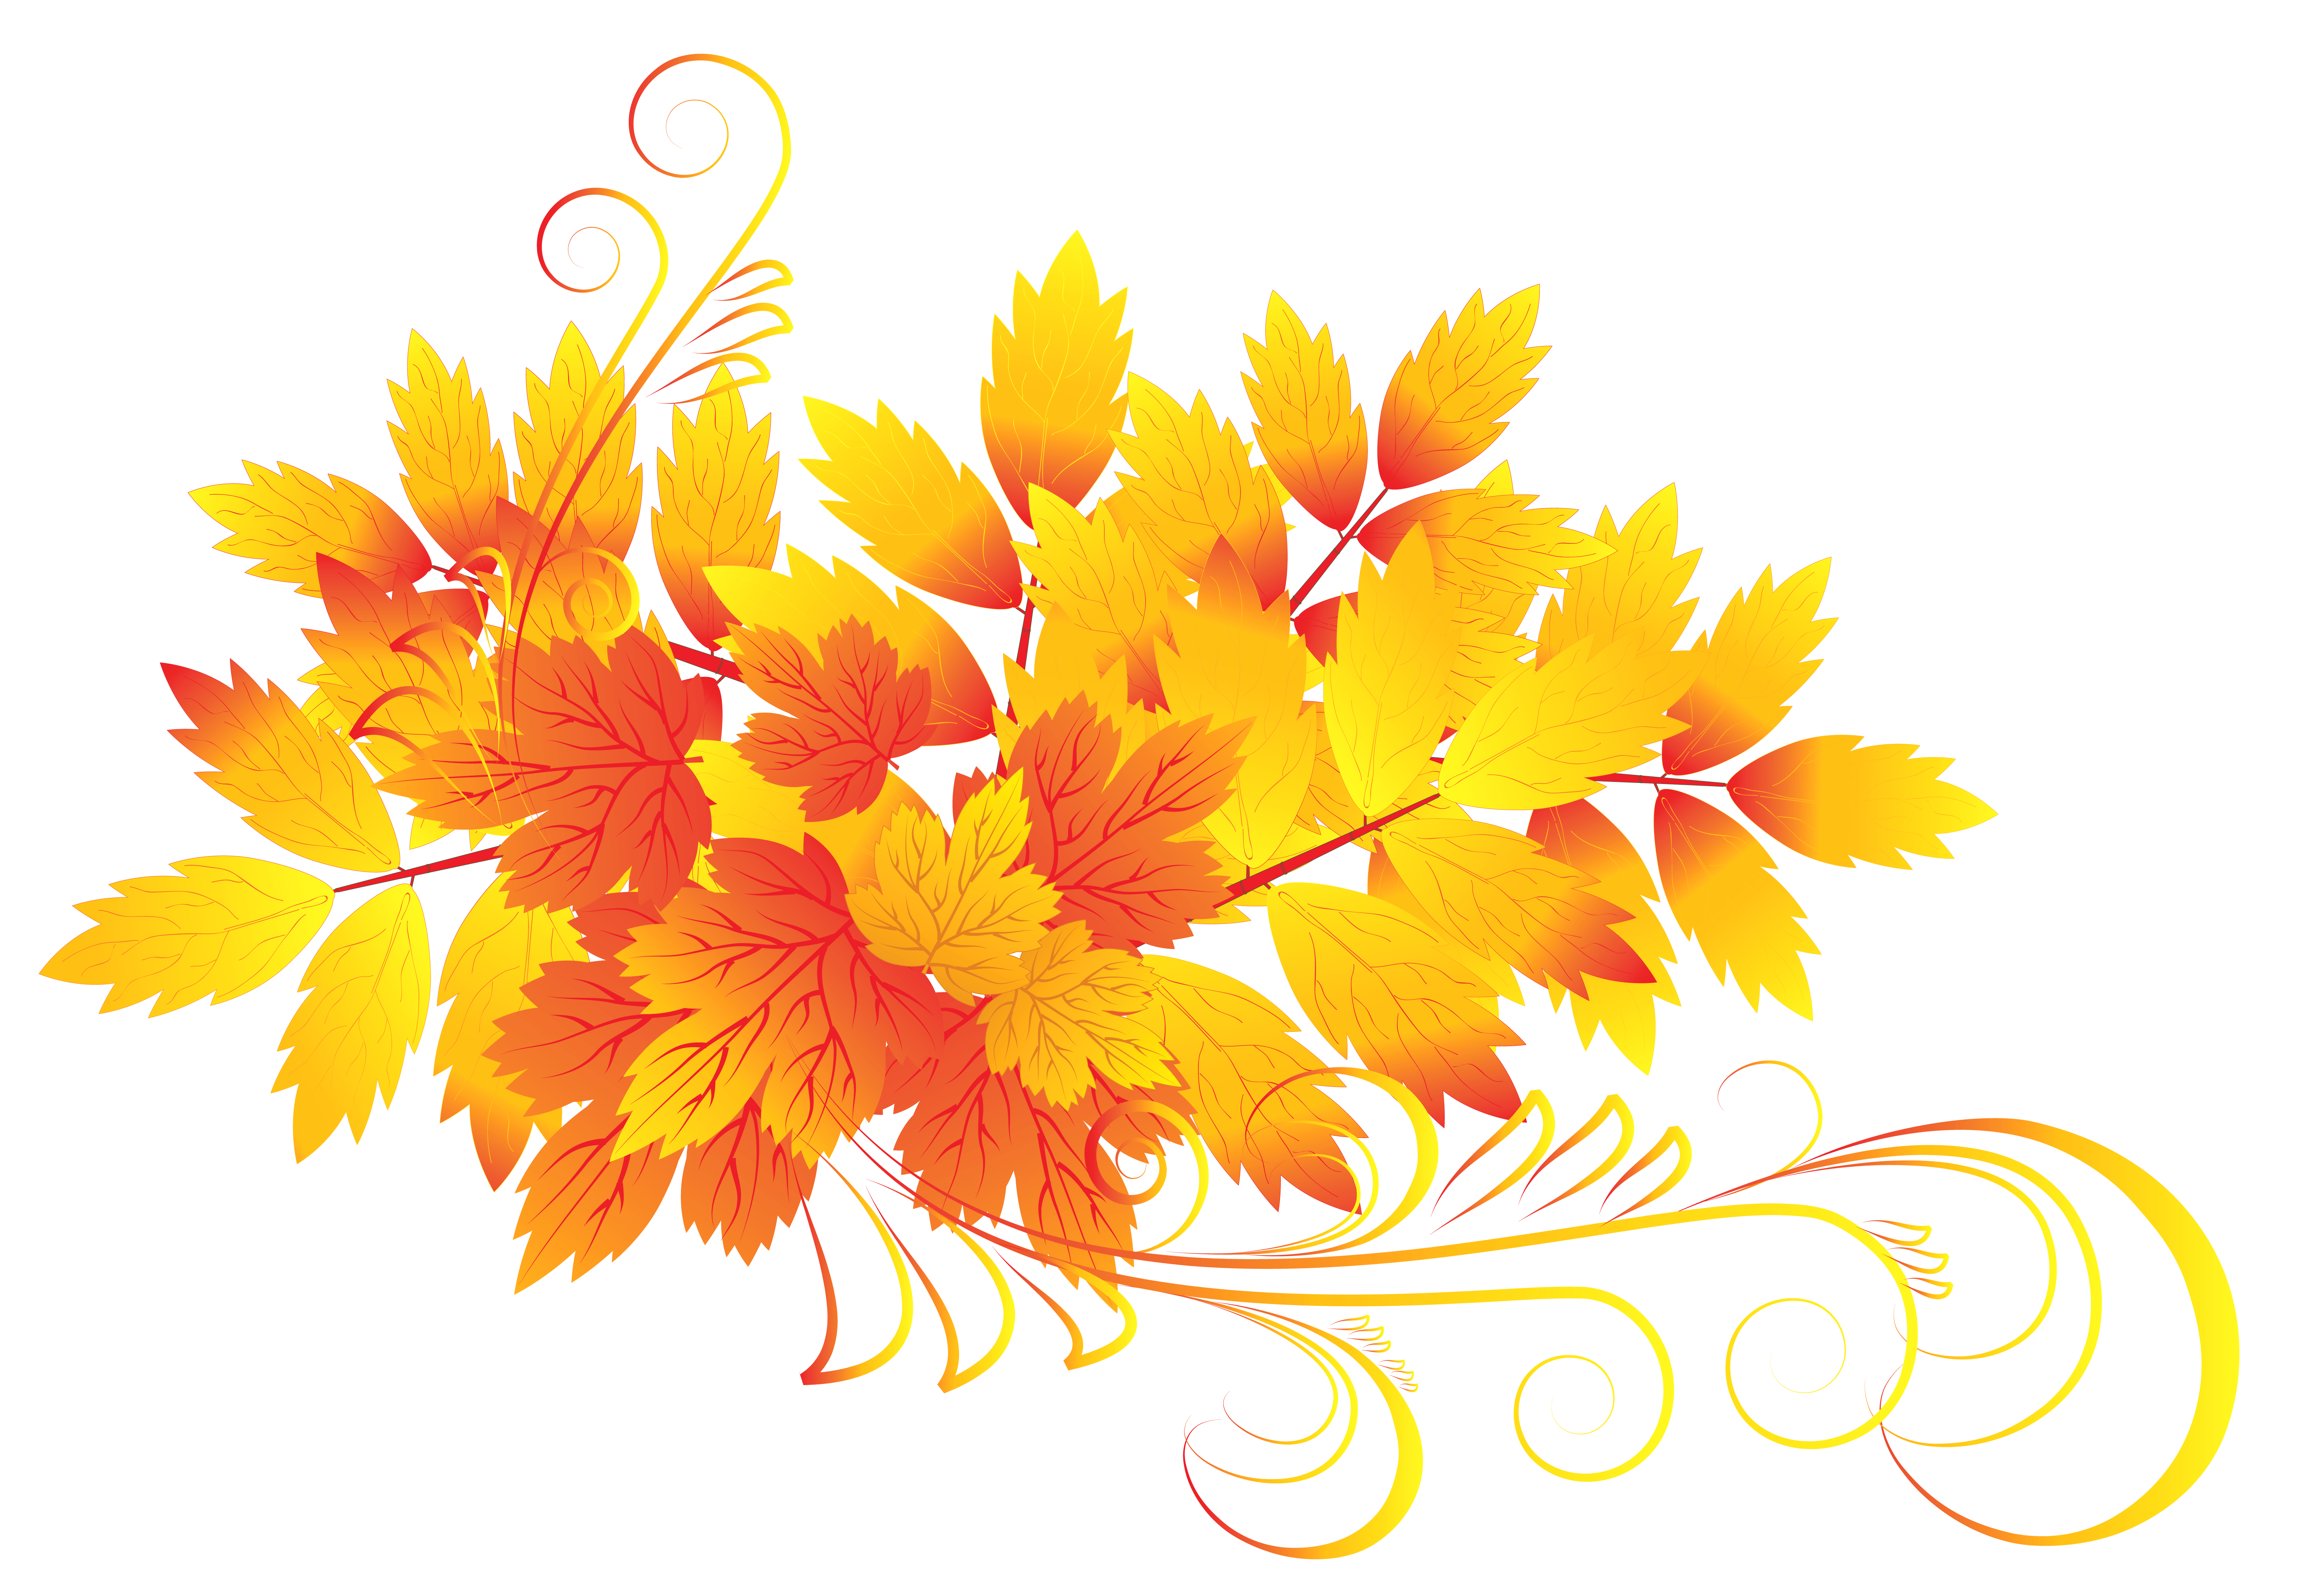 Fall flower clipart banner freeuse library Autumn leaf color Clip art - Autumn Leaves PNG Clipart 6424*4450 ... banner freeuse library